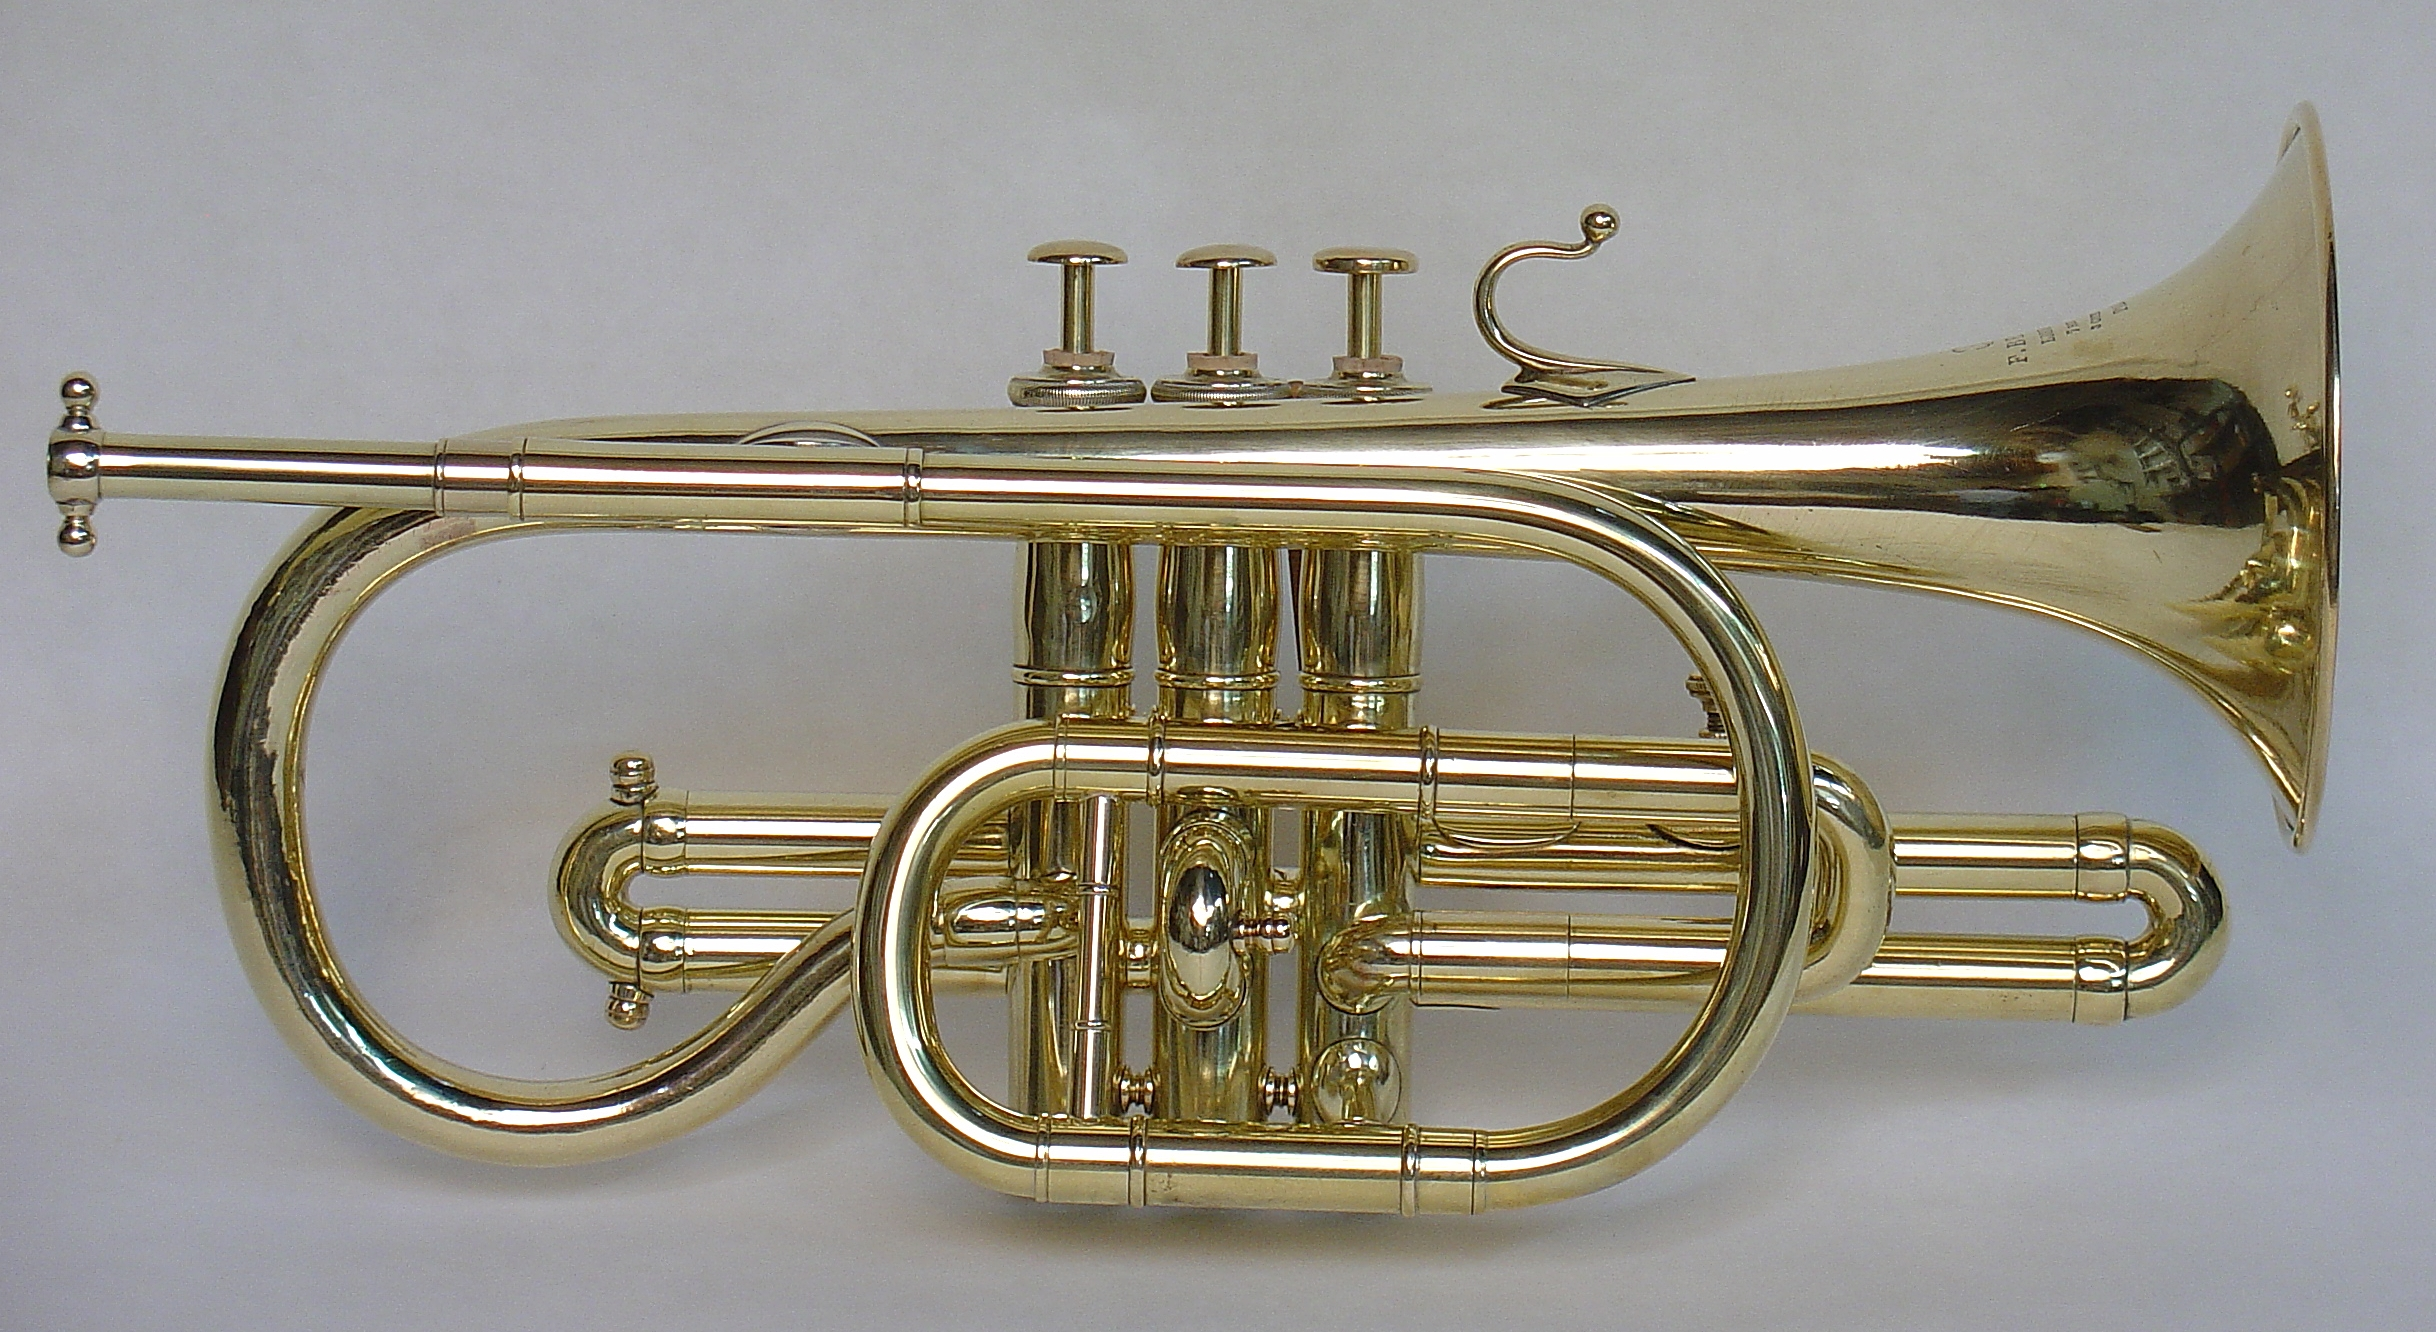 Besson Cornets from the 1850s